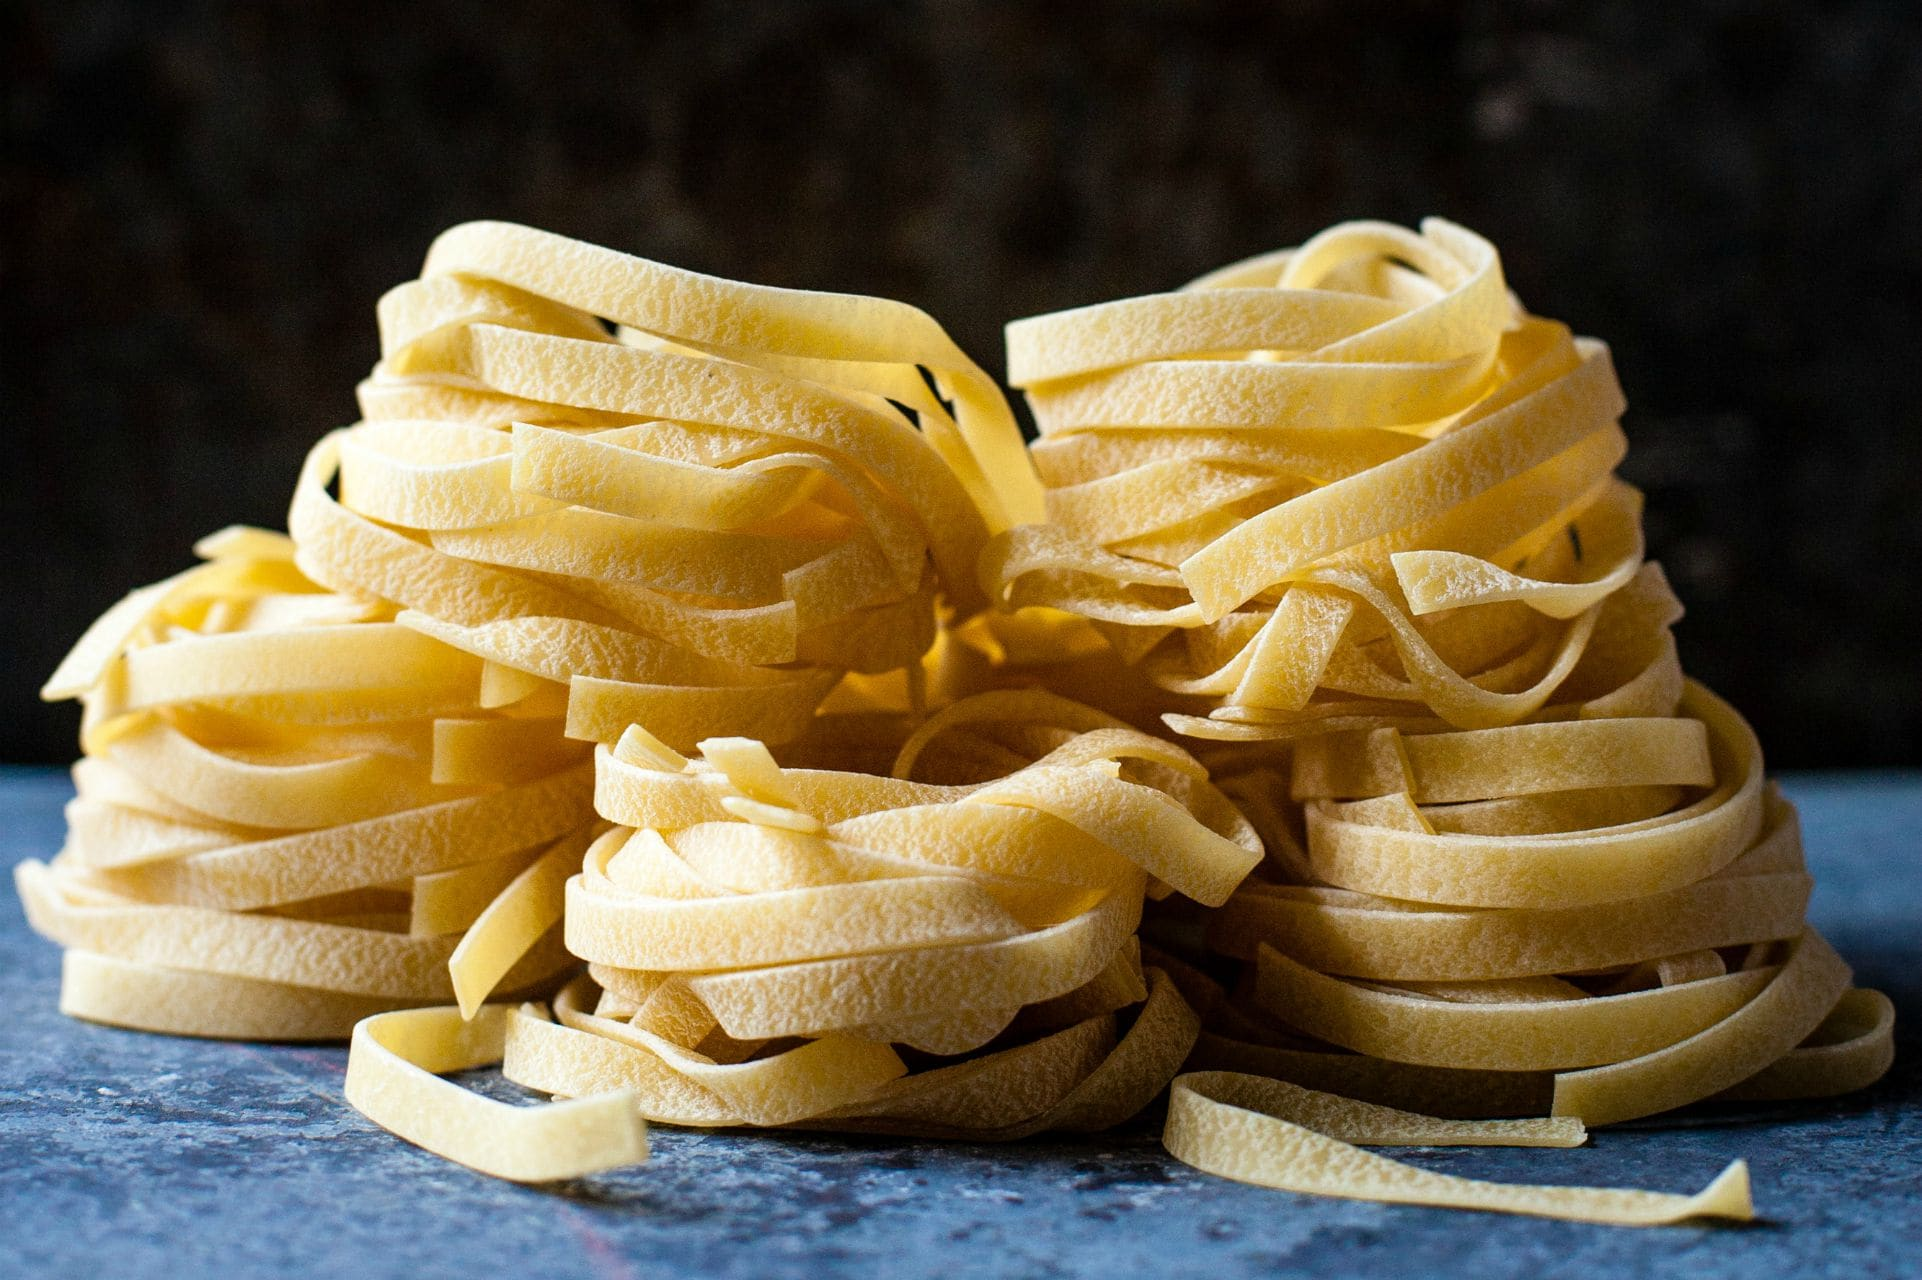 Tagliatelle_Types of Pasta